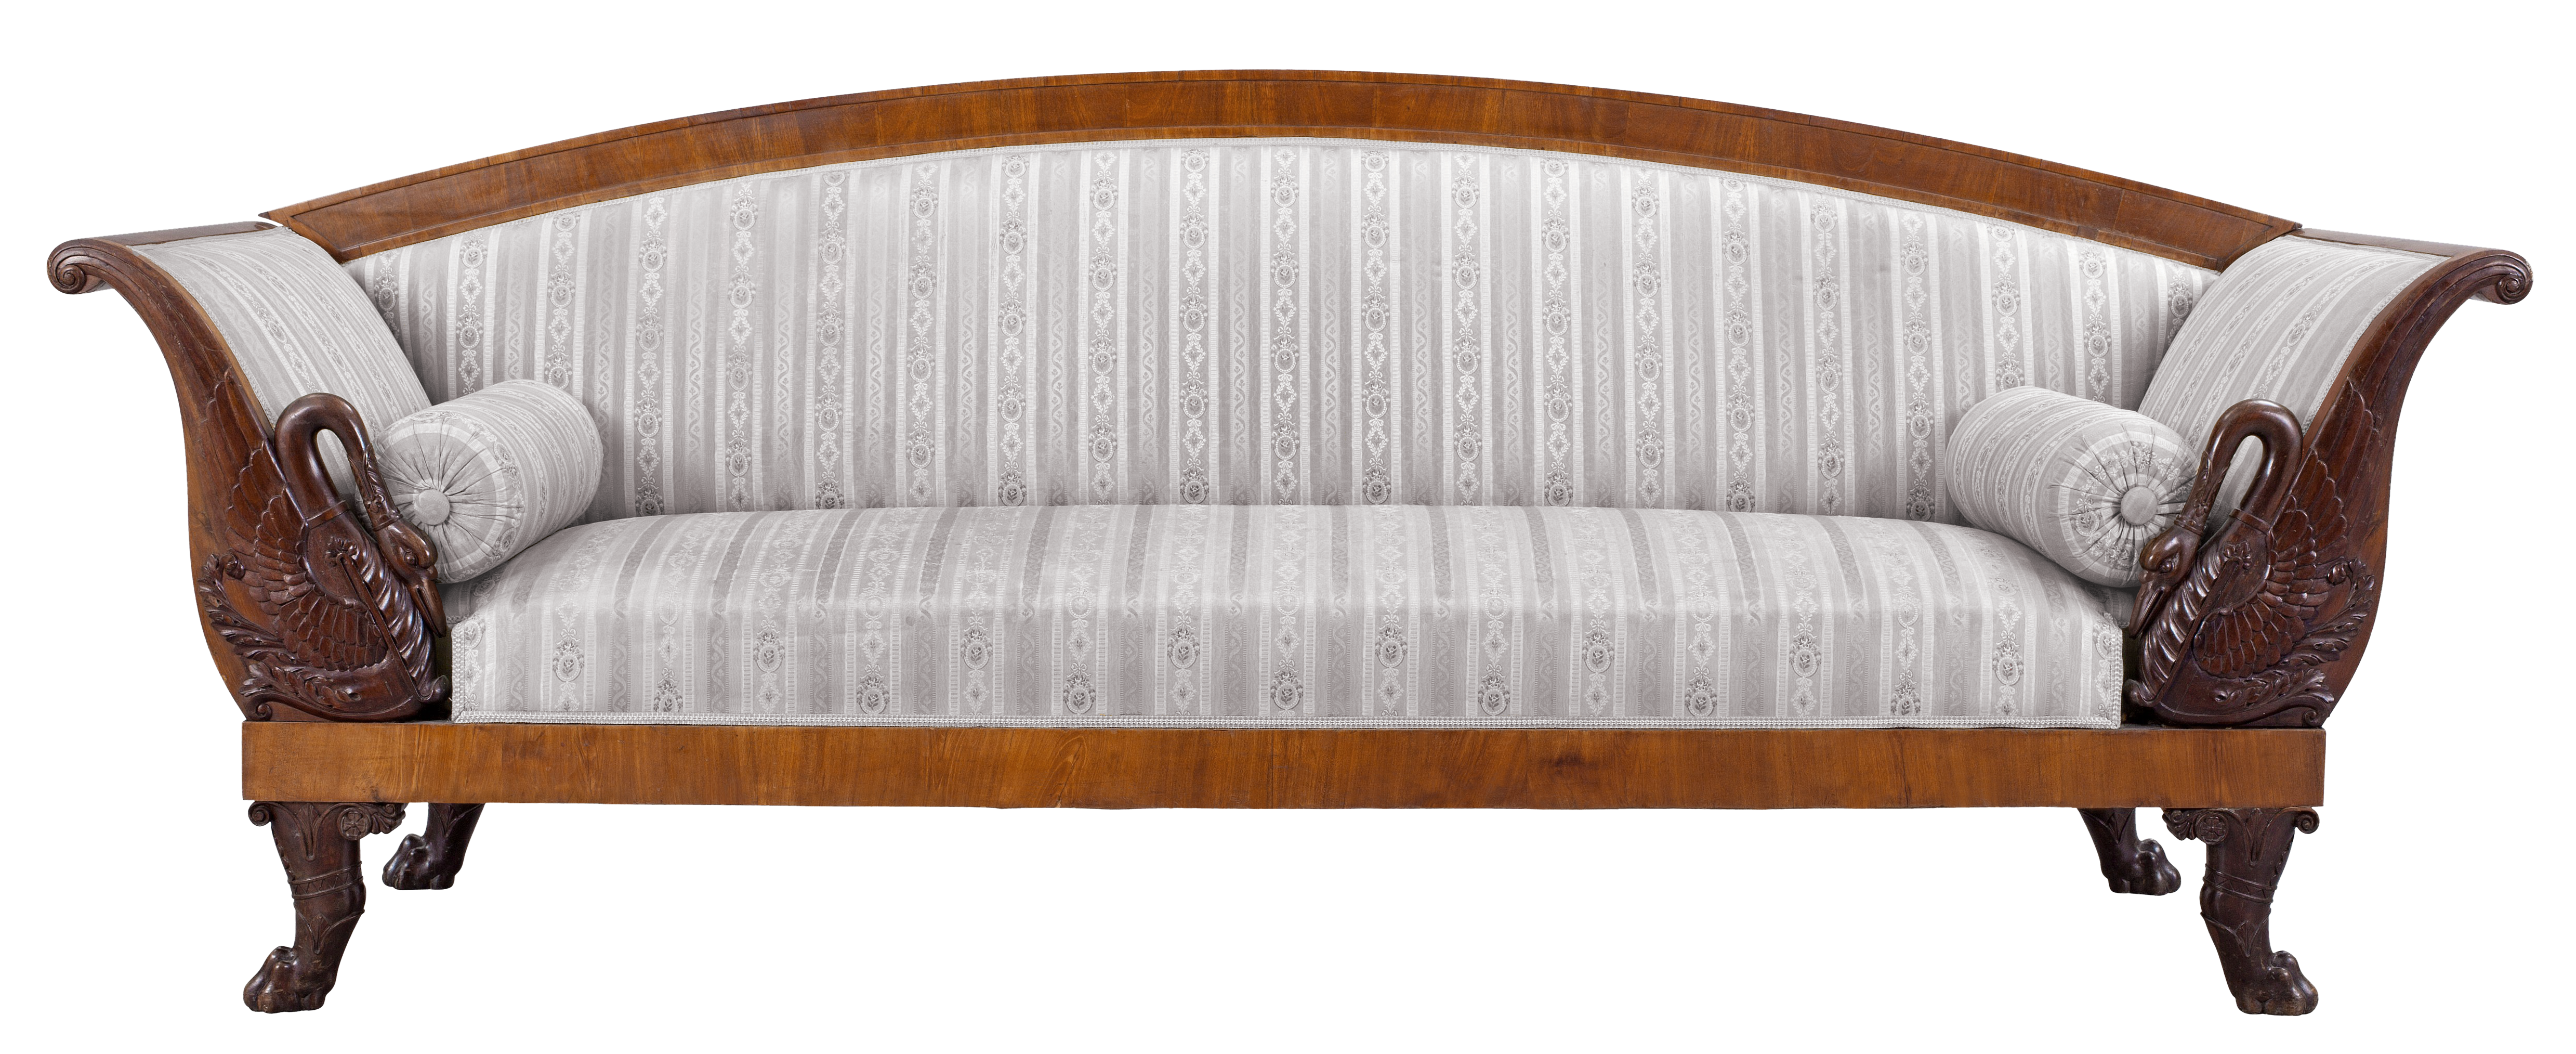 view full size furniture png 1121806683 png ideas - Furniture PNG